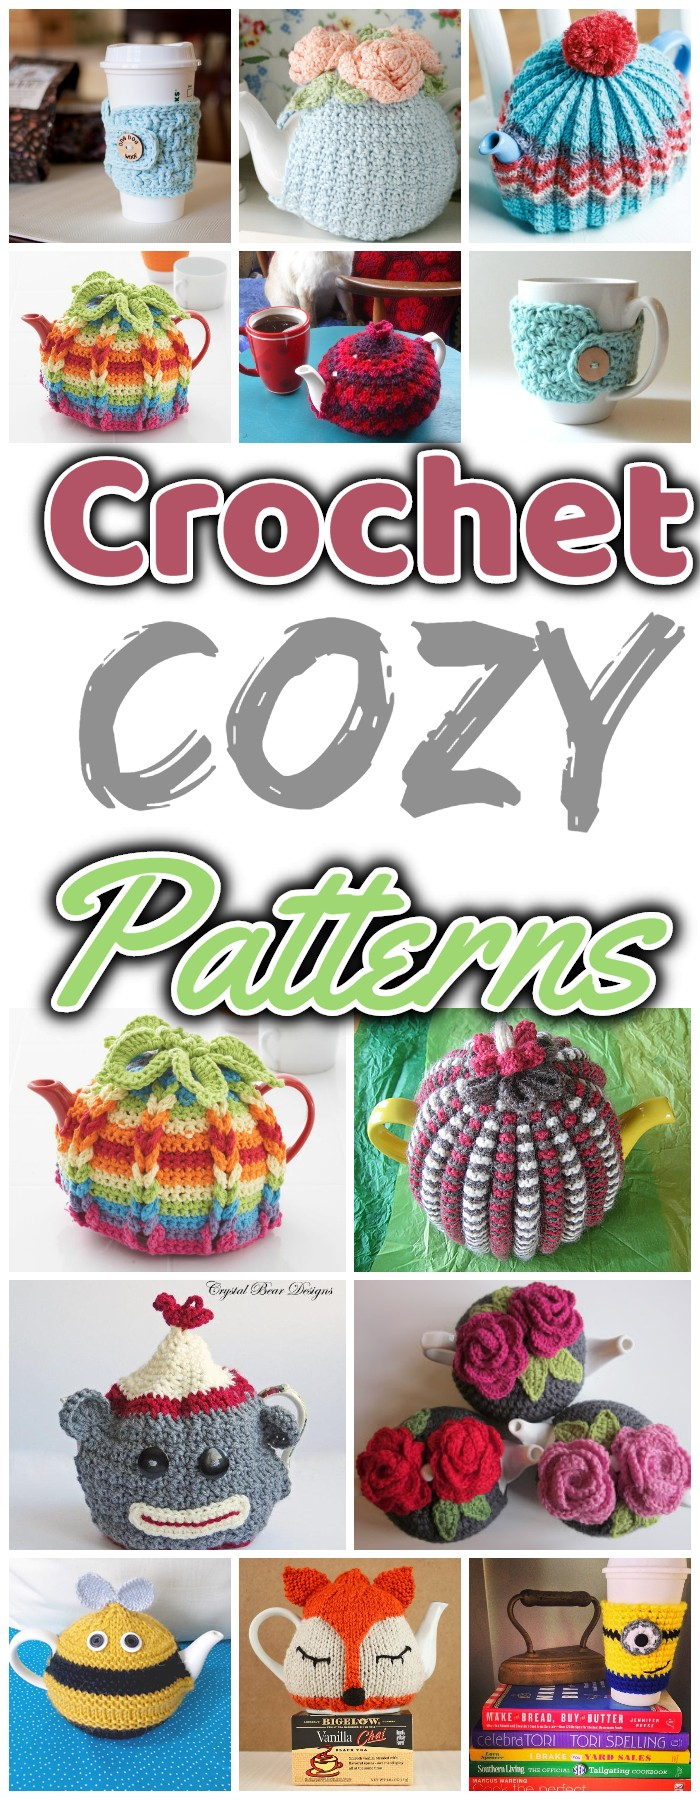 Crochet Cozy Patterns